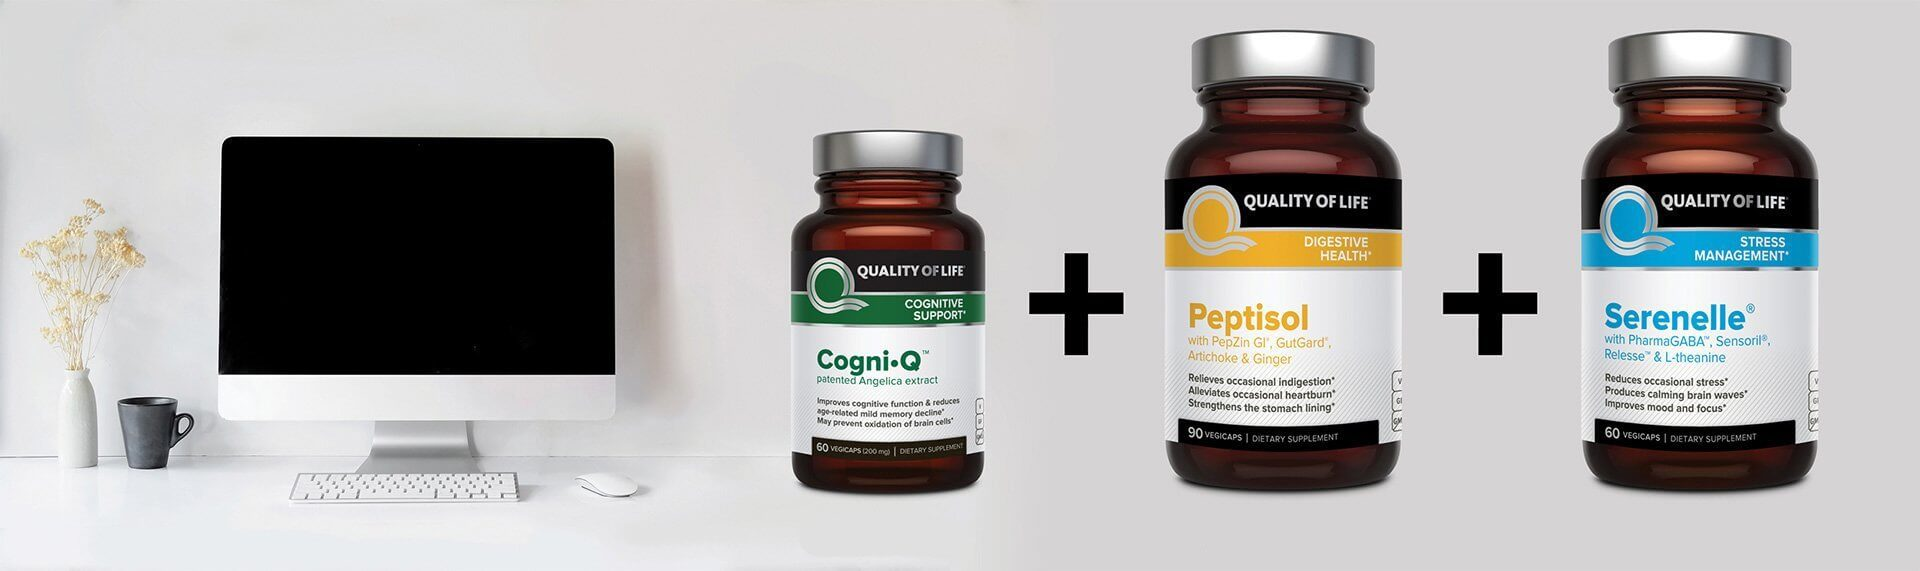 Quality of Life Supplements Online | Shop high-quality